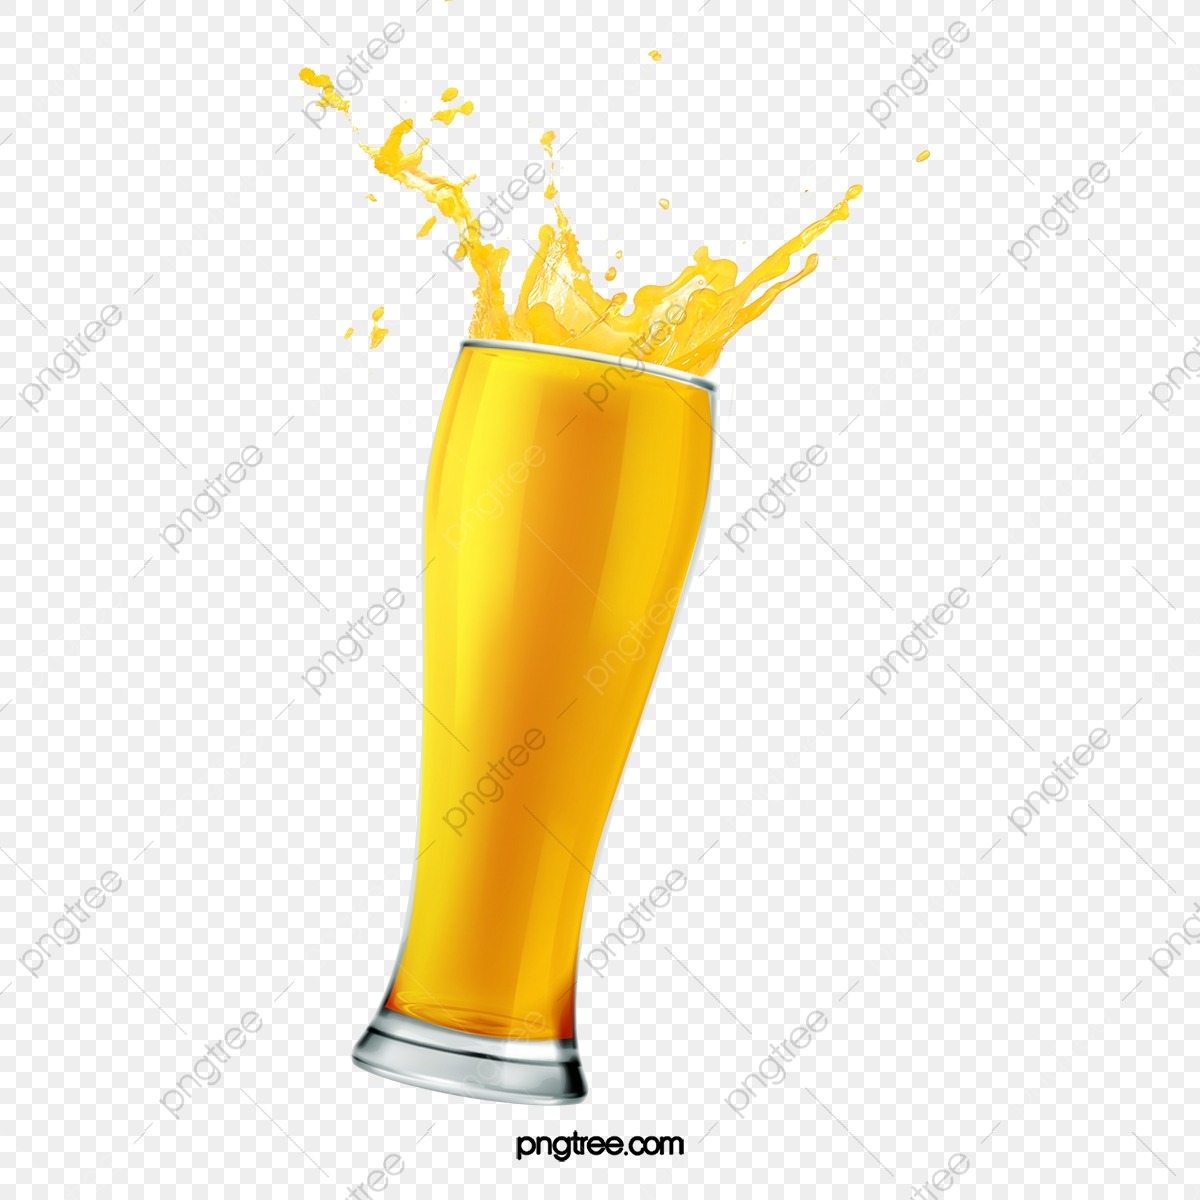 hight resolution of commercial use resource upgrade to premium plan and get license authorization upgradenow freshly squeezed orange juice orange clipart